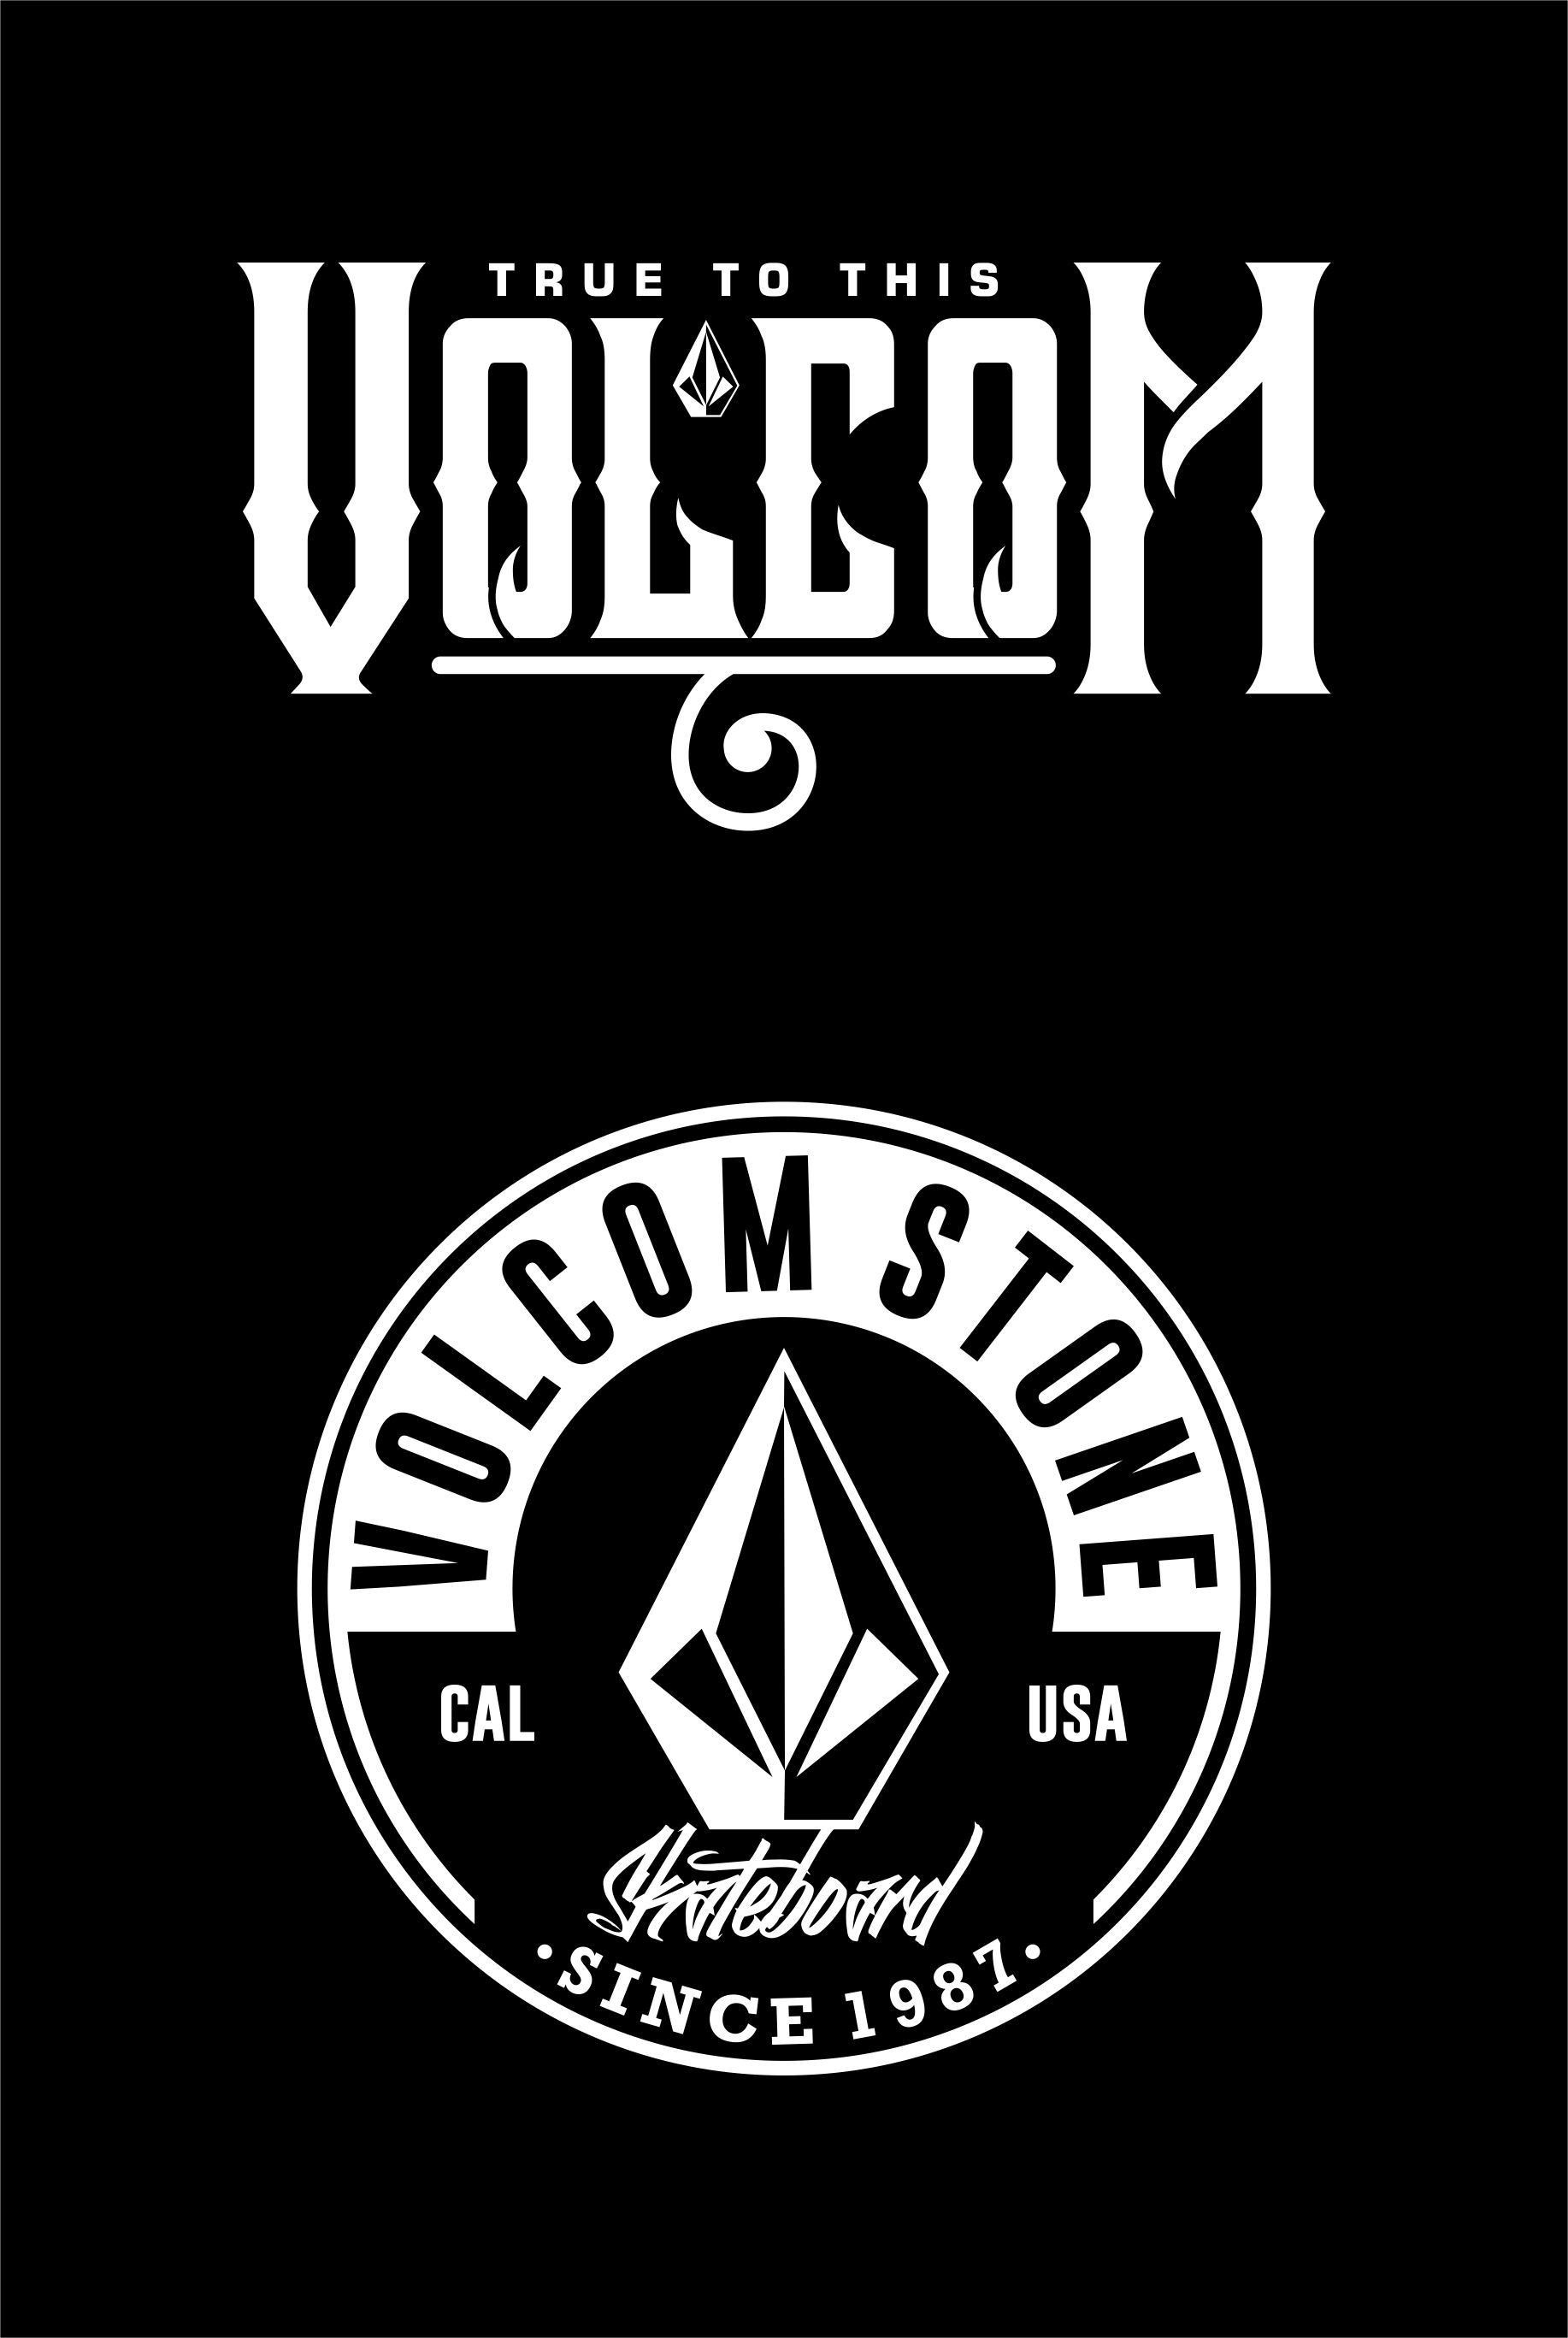 Hd Volcom Wallpaper Volcom Graphic Tshirt Design Wallpaper